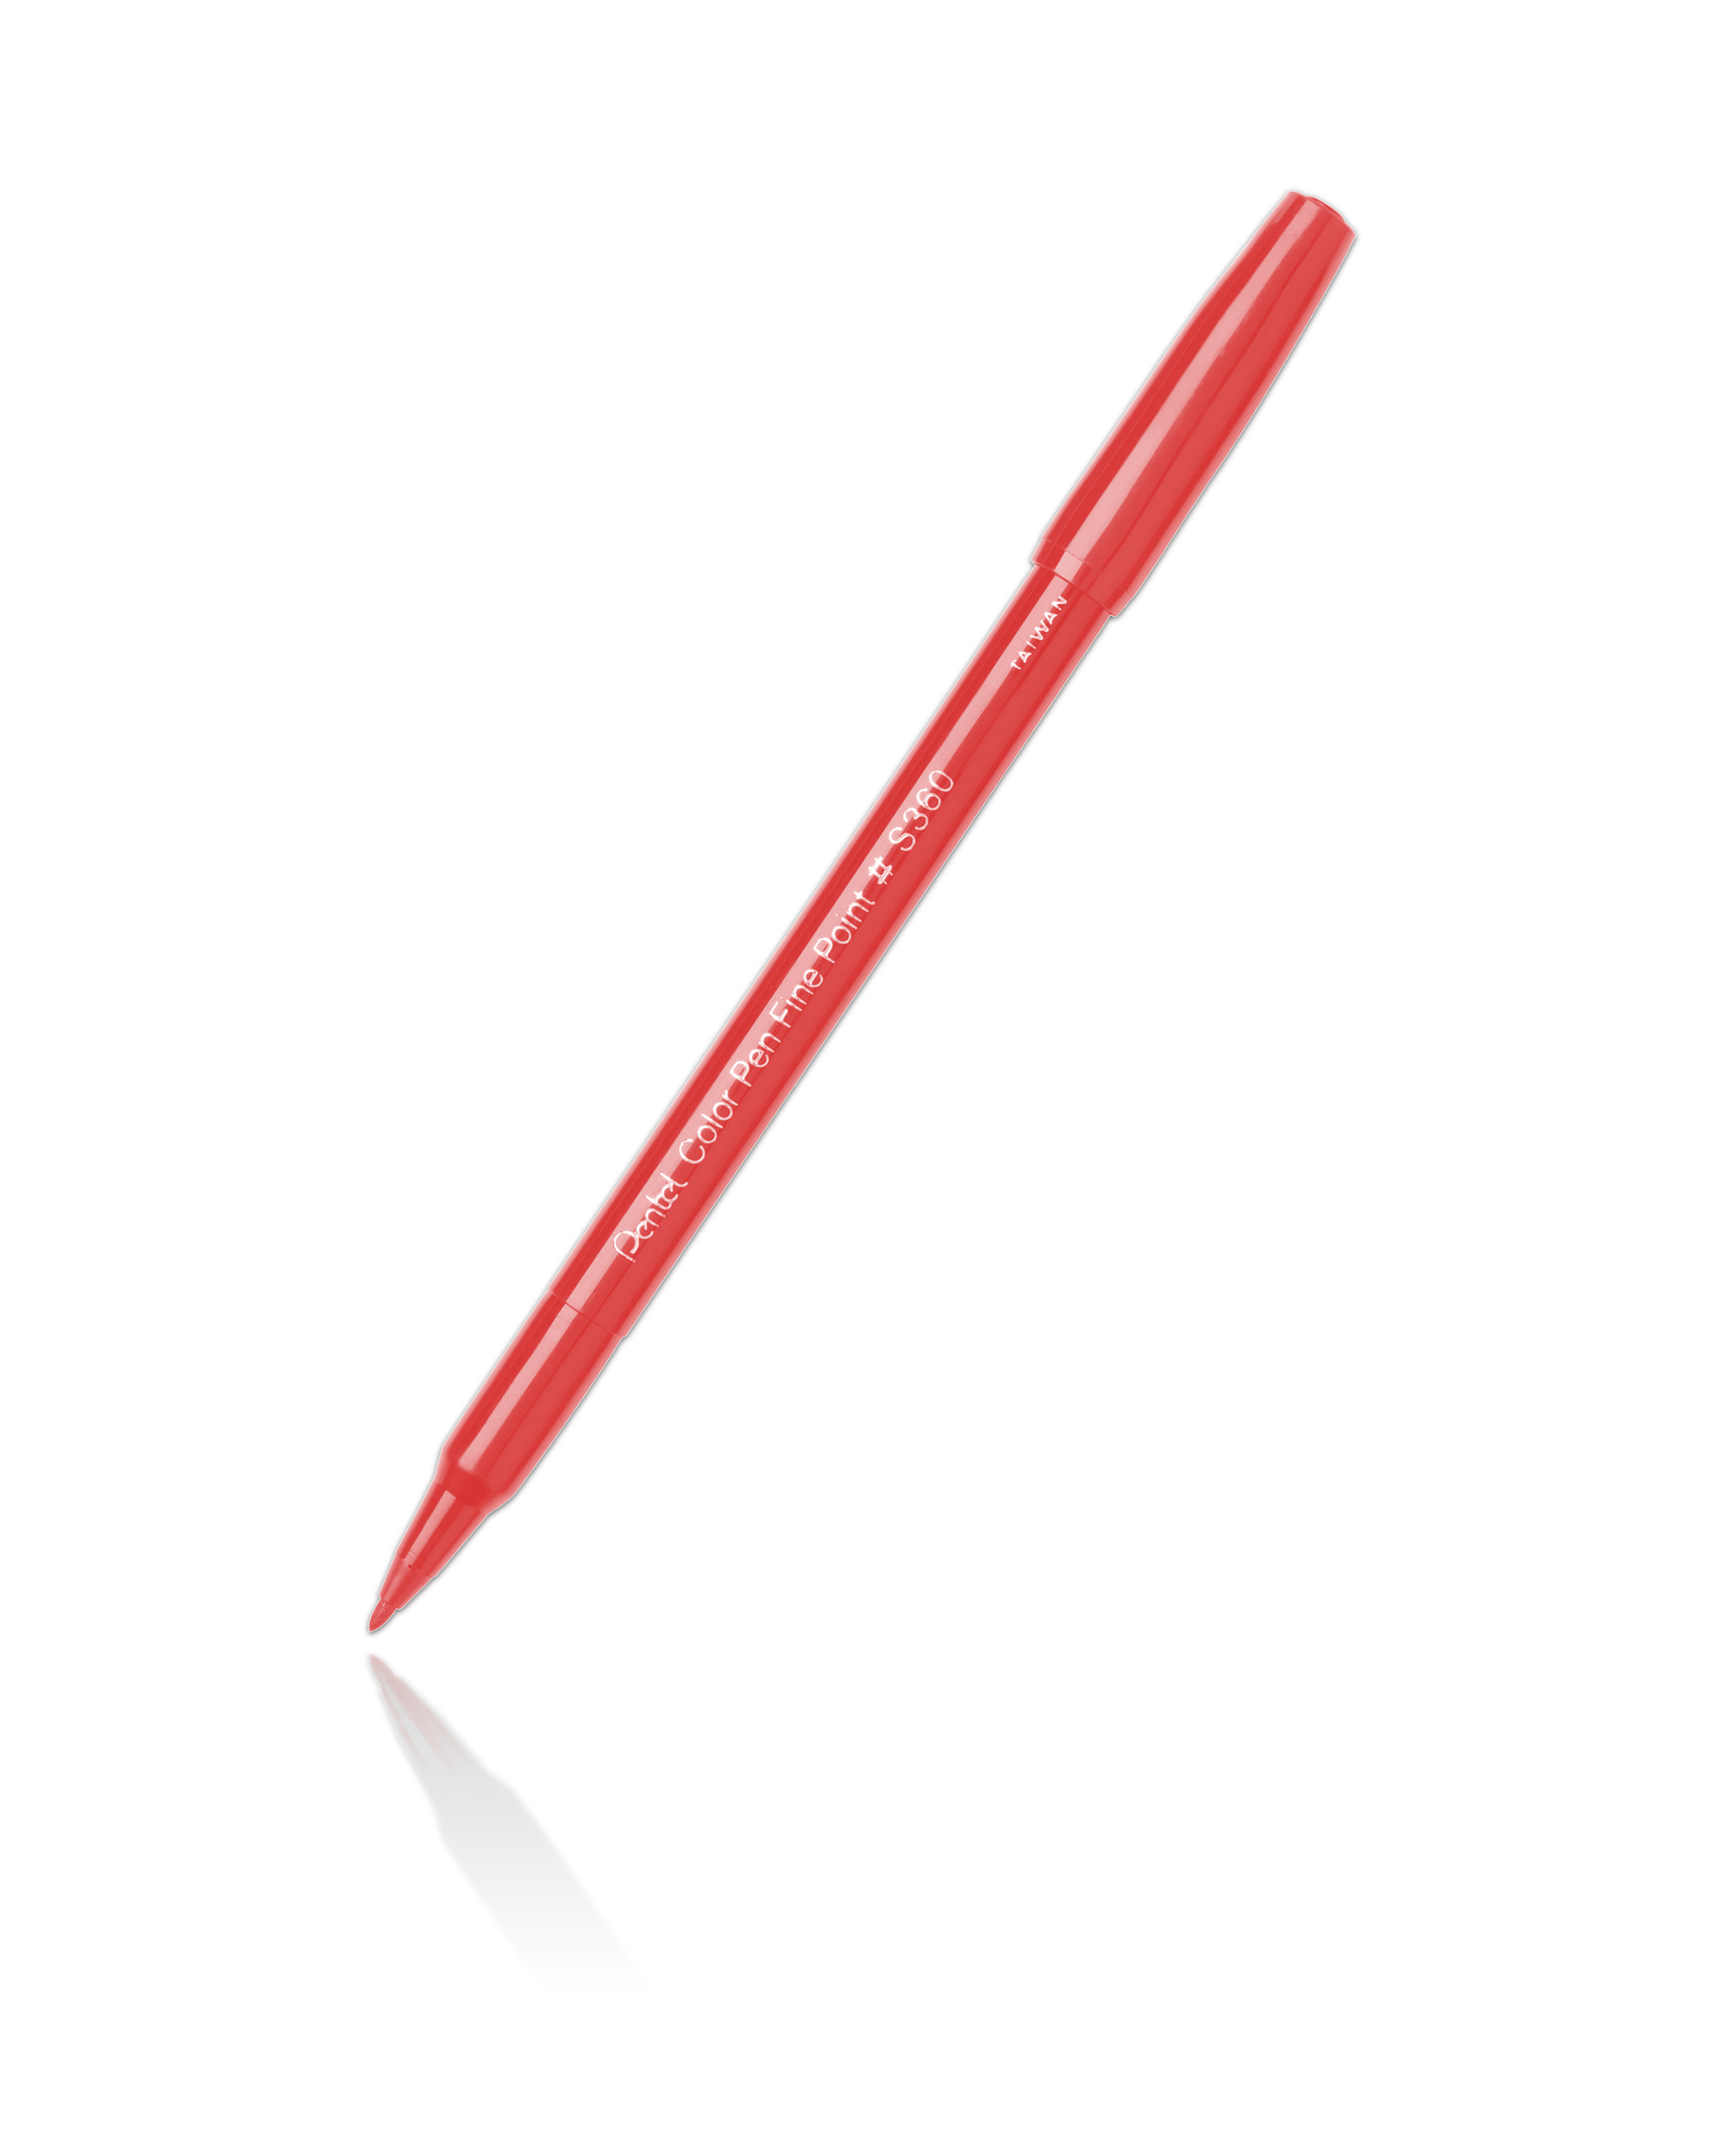 Pentel S360 Color Pen Red-102